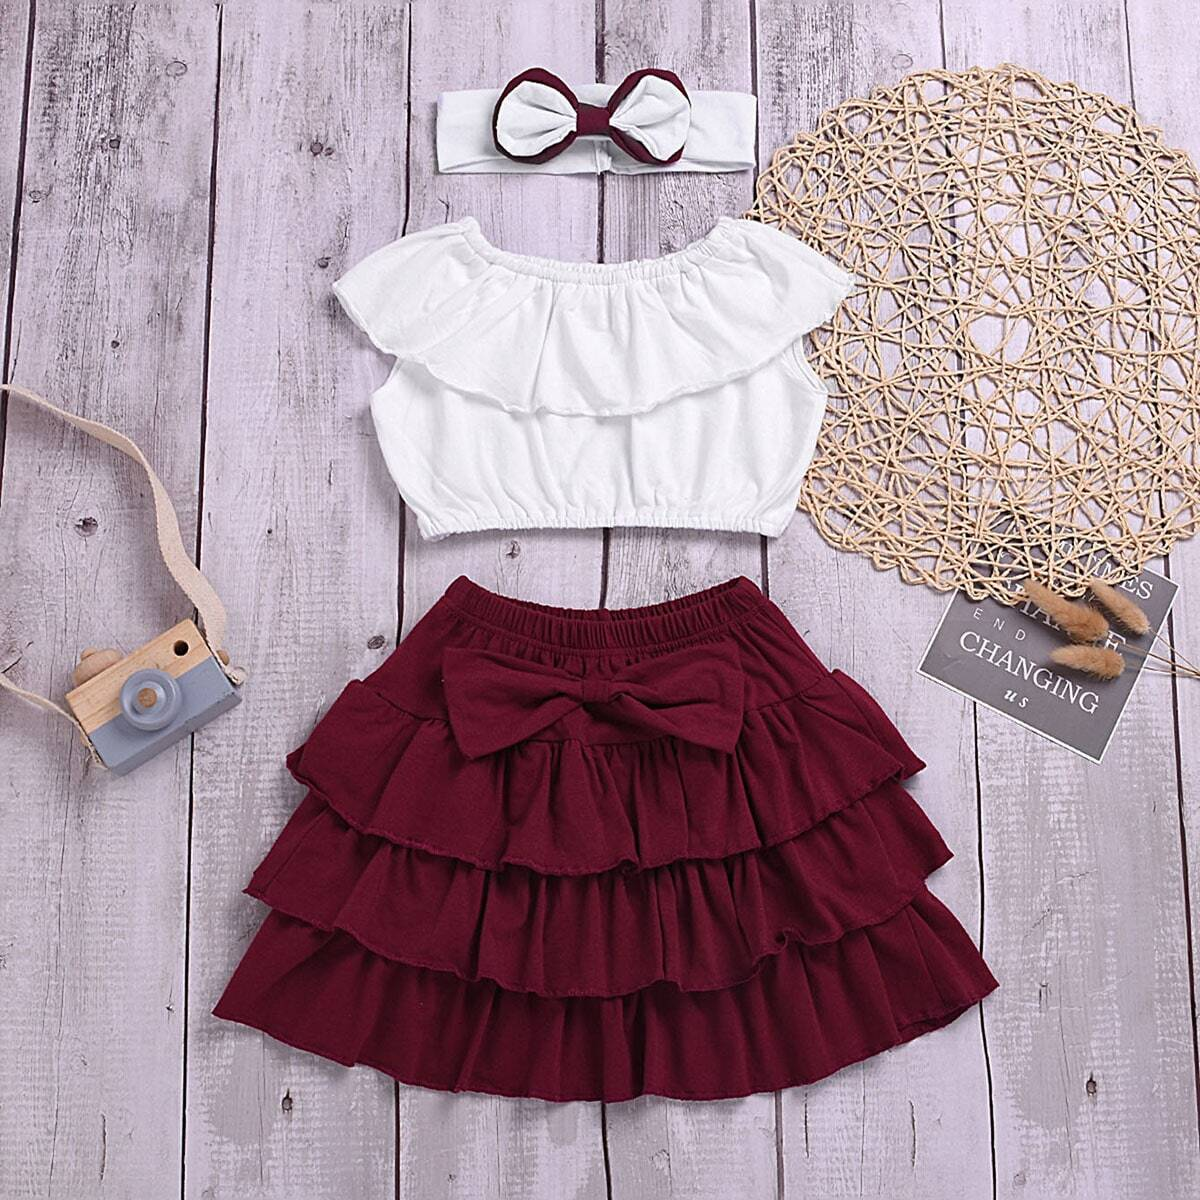 SHEIN coupon: Toddler Girl Ruffle Trim Top And Bow Tiered Hem Skirt With Headband